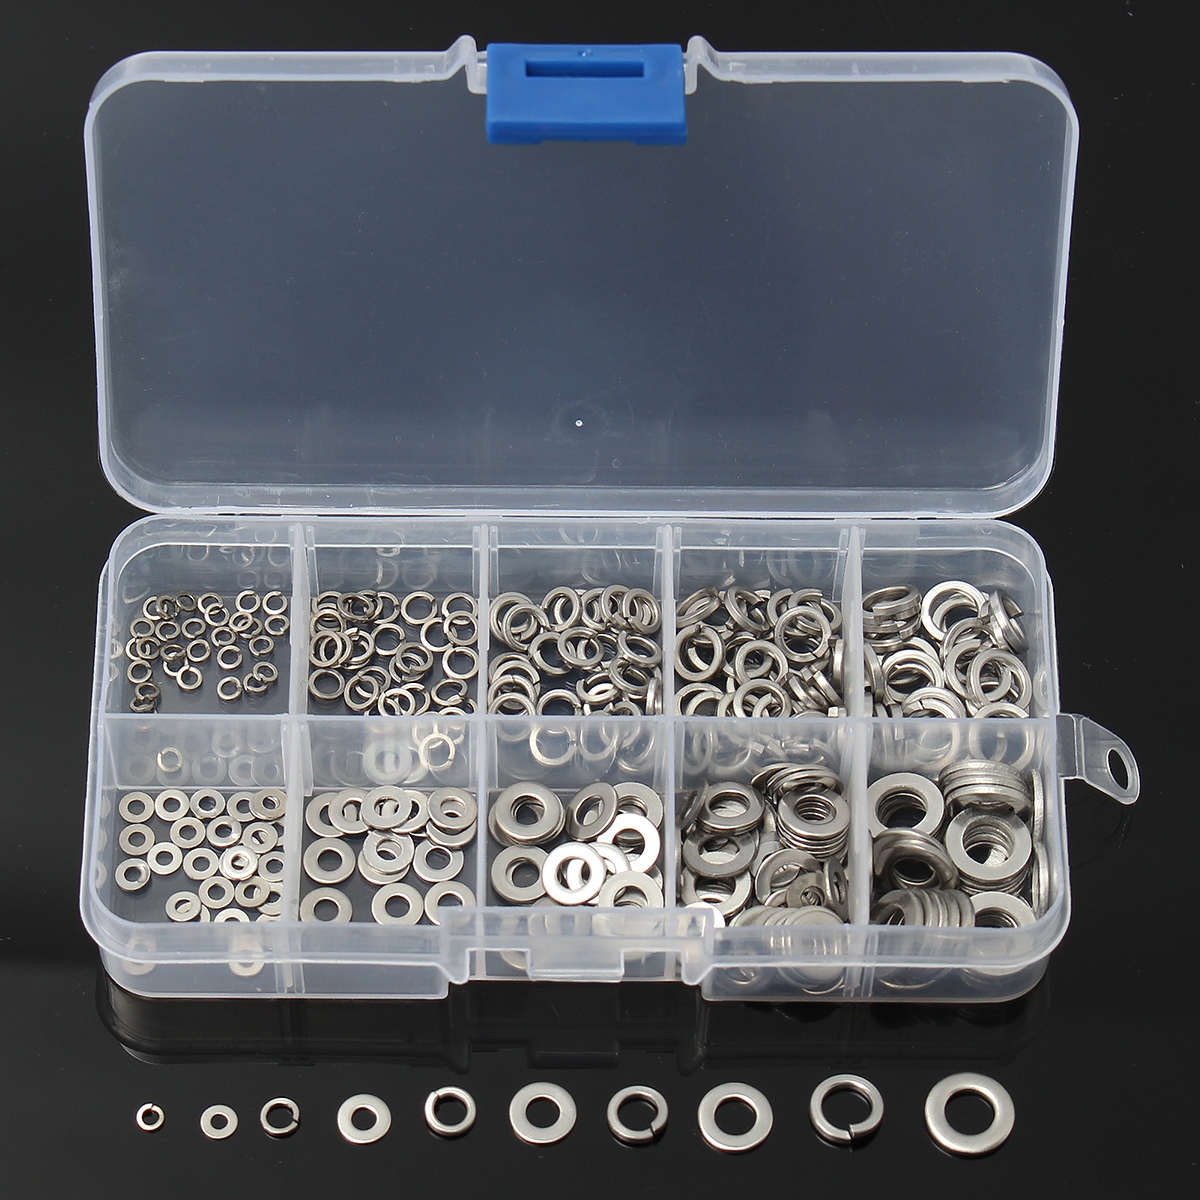 304 Stainless Steel Spring Washer M2-M6 W/Case Assortment For Sump Plugs 300Pcs